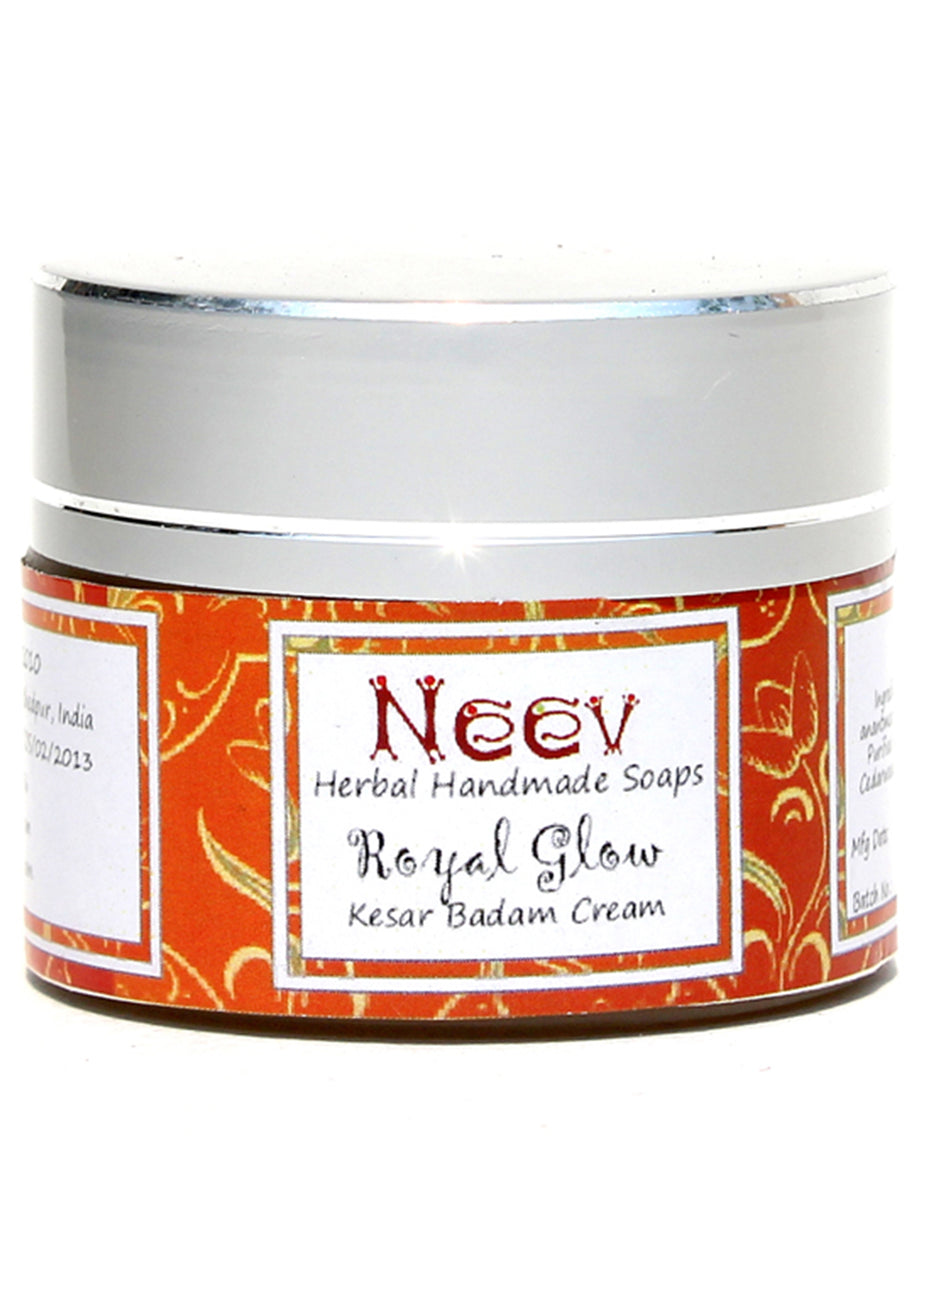 Neev Royal Glow Kesar Badam Cream, Beauty & Skin Care, Neev Herbal Handmade Soaps, ihaat, [made_in_india], [handmade] - ihaat